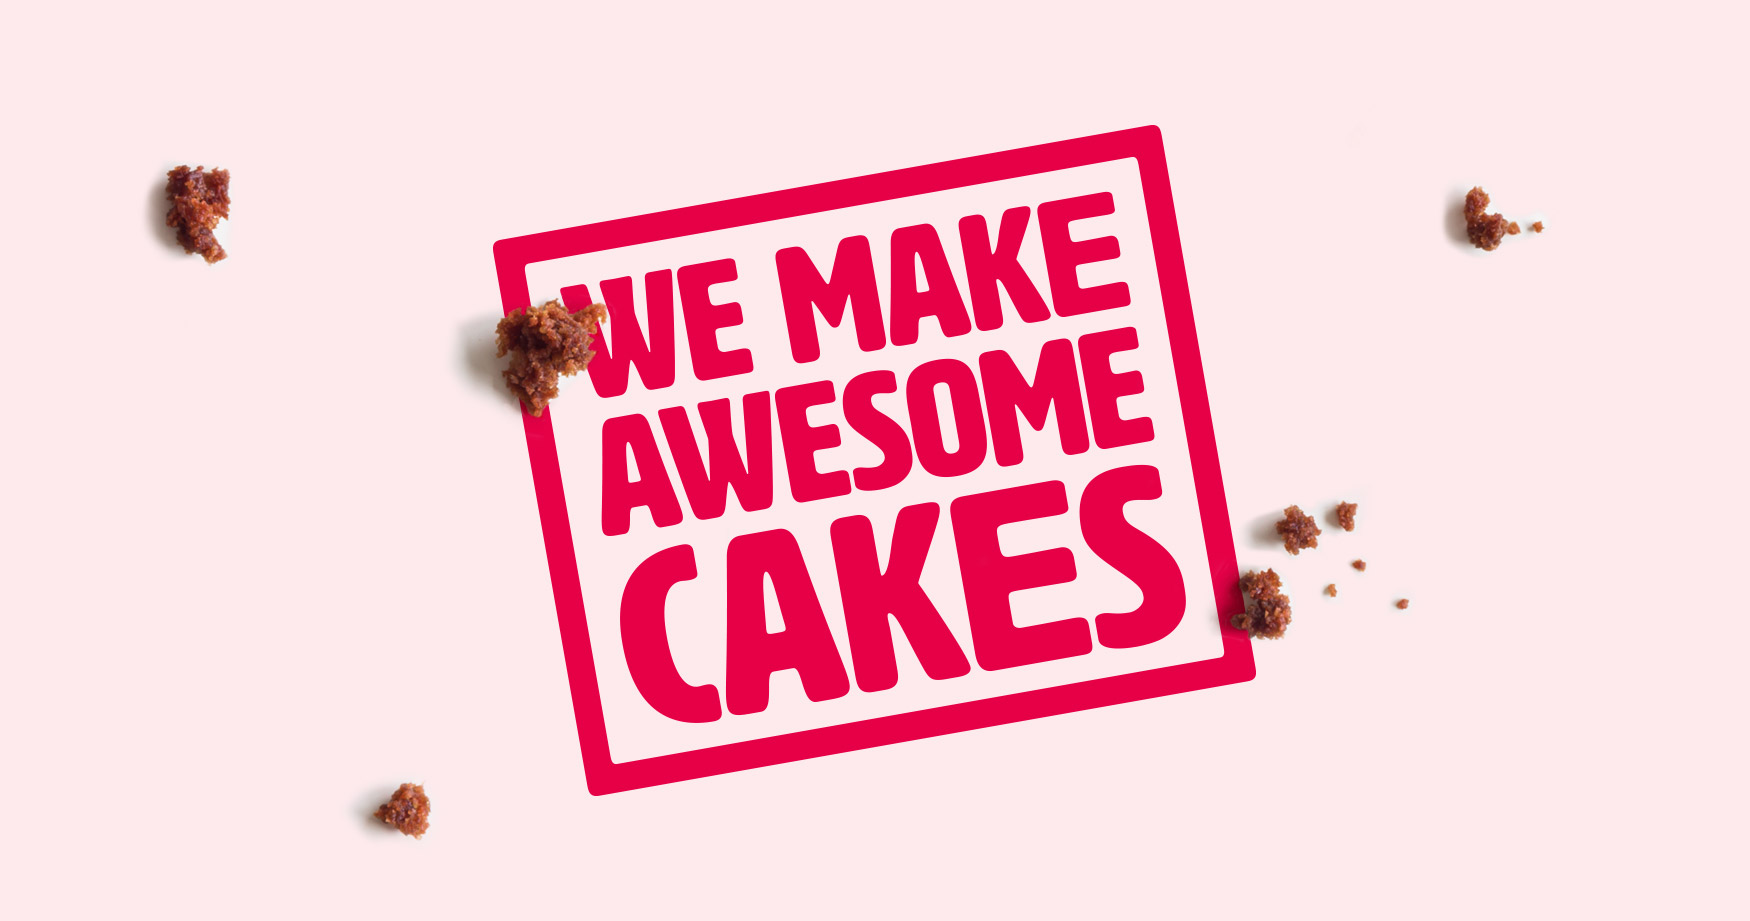 we make awesome cakes brand logo graphic design branding cardiff cake marketing campaign type typography